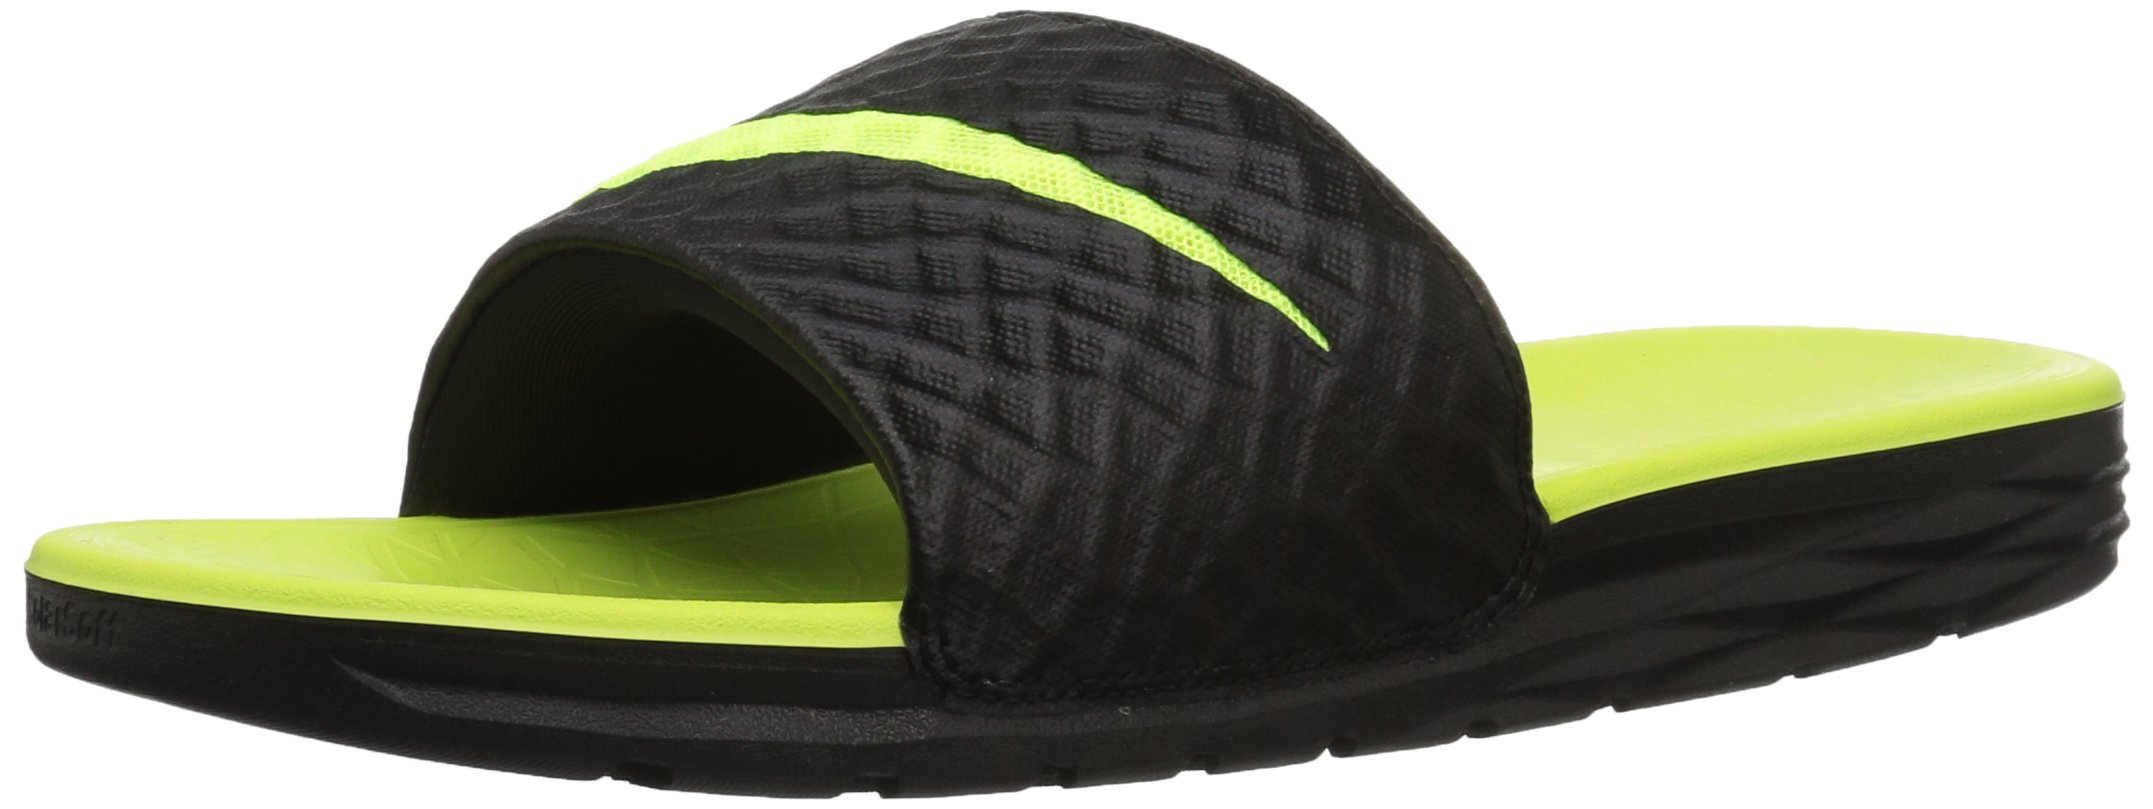 Nike Men's Benassi Solarsoft Slide Athletic Sandal, Black/Volt, 5 D(M) US